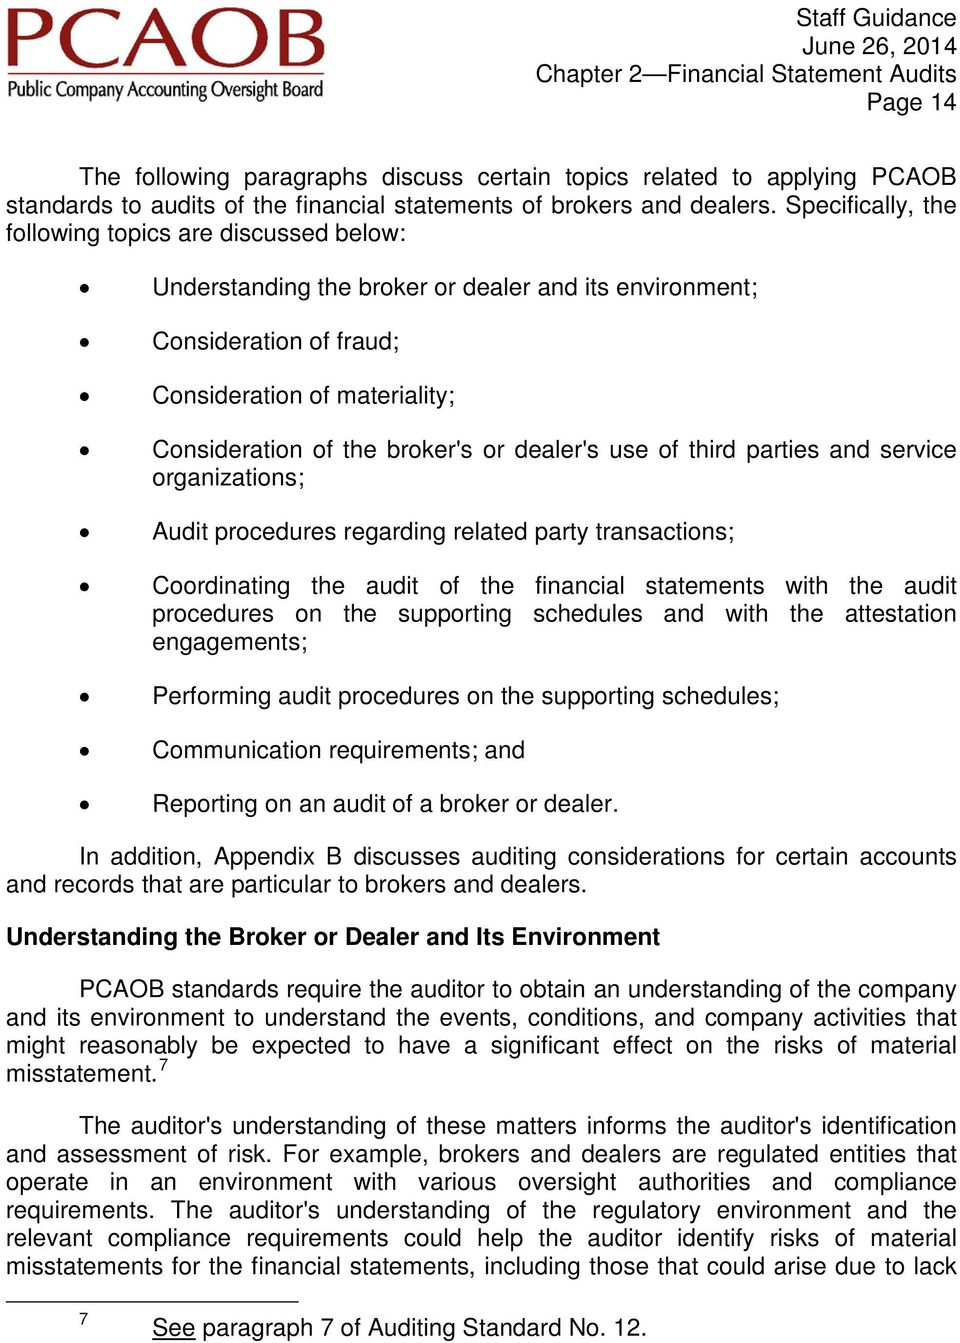 dealer's use of third parties and service organizations; Audit procedures regarding related party transactions; Coordinating the audit of the financial statements with the audit procedures on the